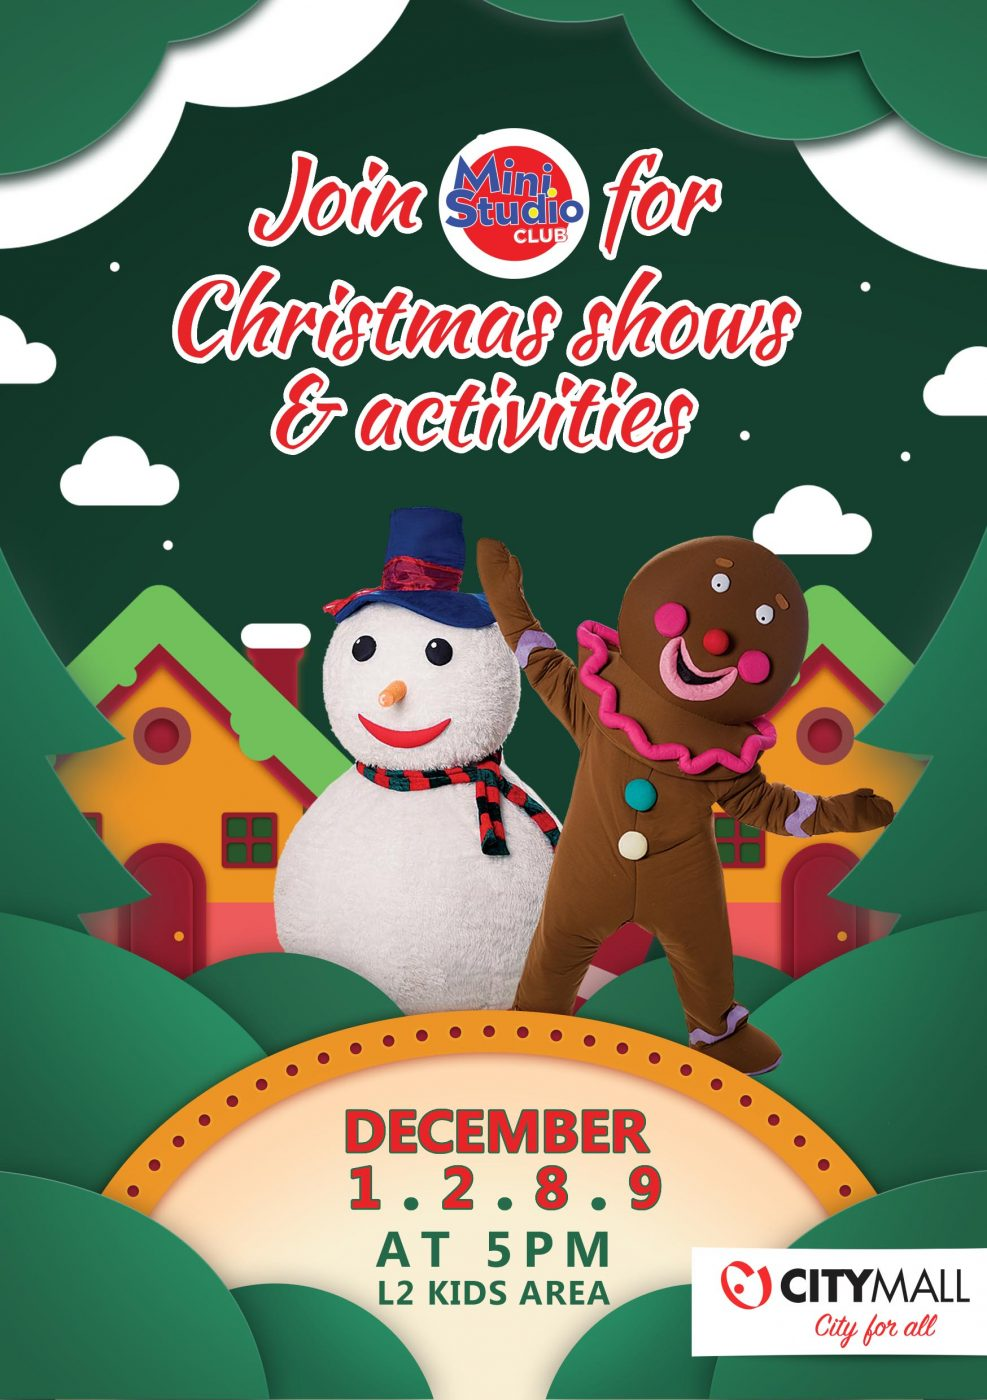 CHRISTMAS SHOWS AND ACTIVITIES WITH MINI STUDIO